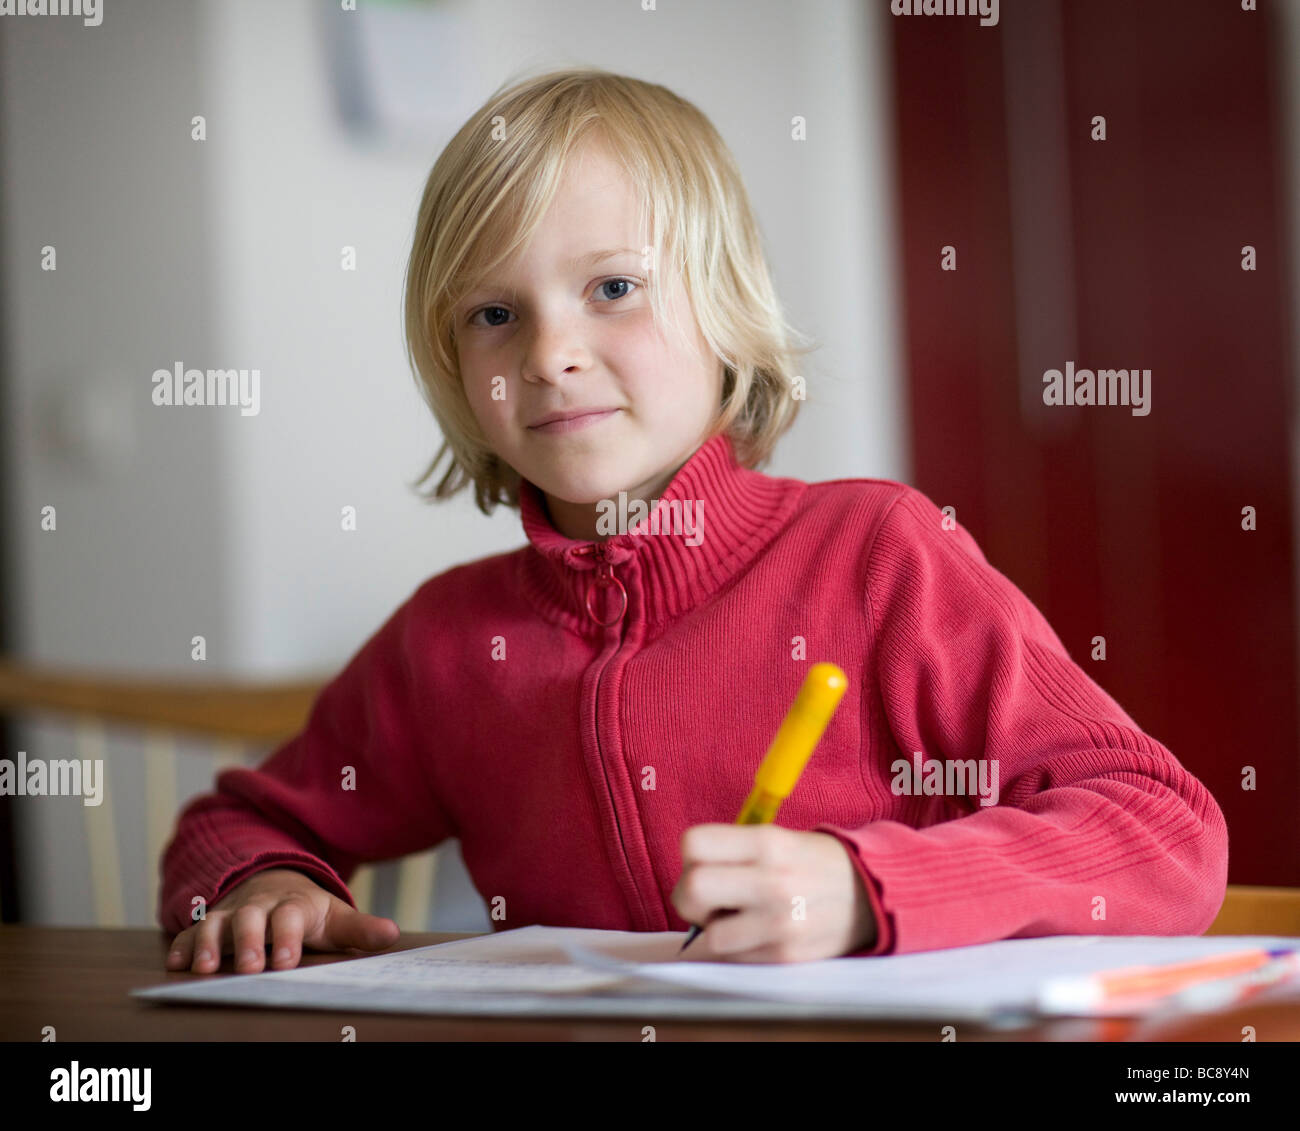 a girl is doing her homework - Stock Image